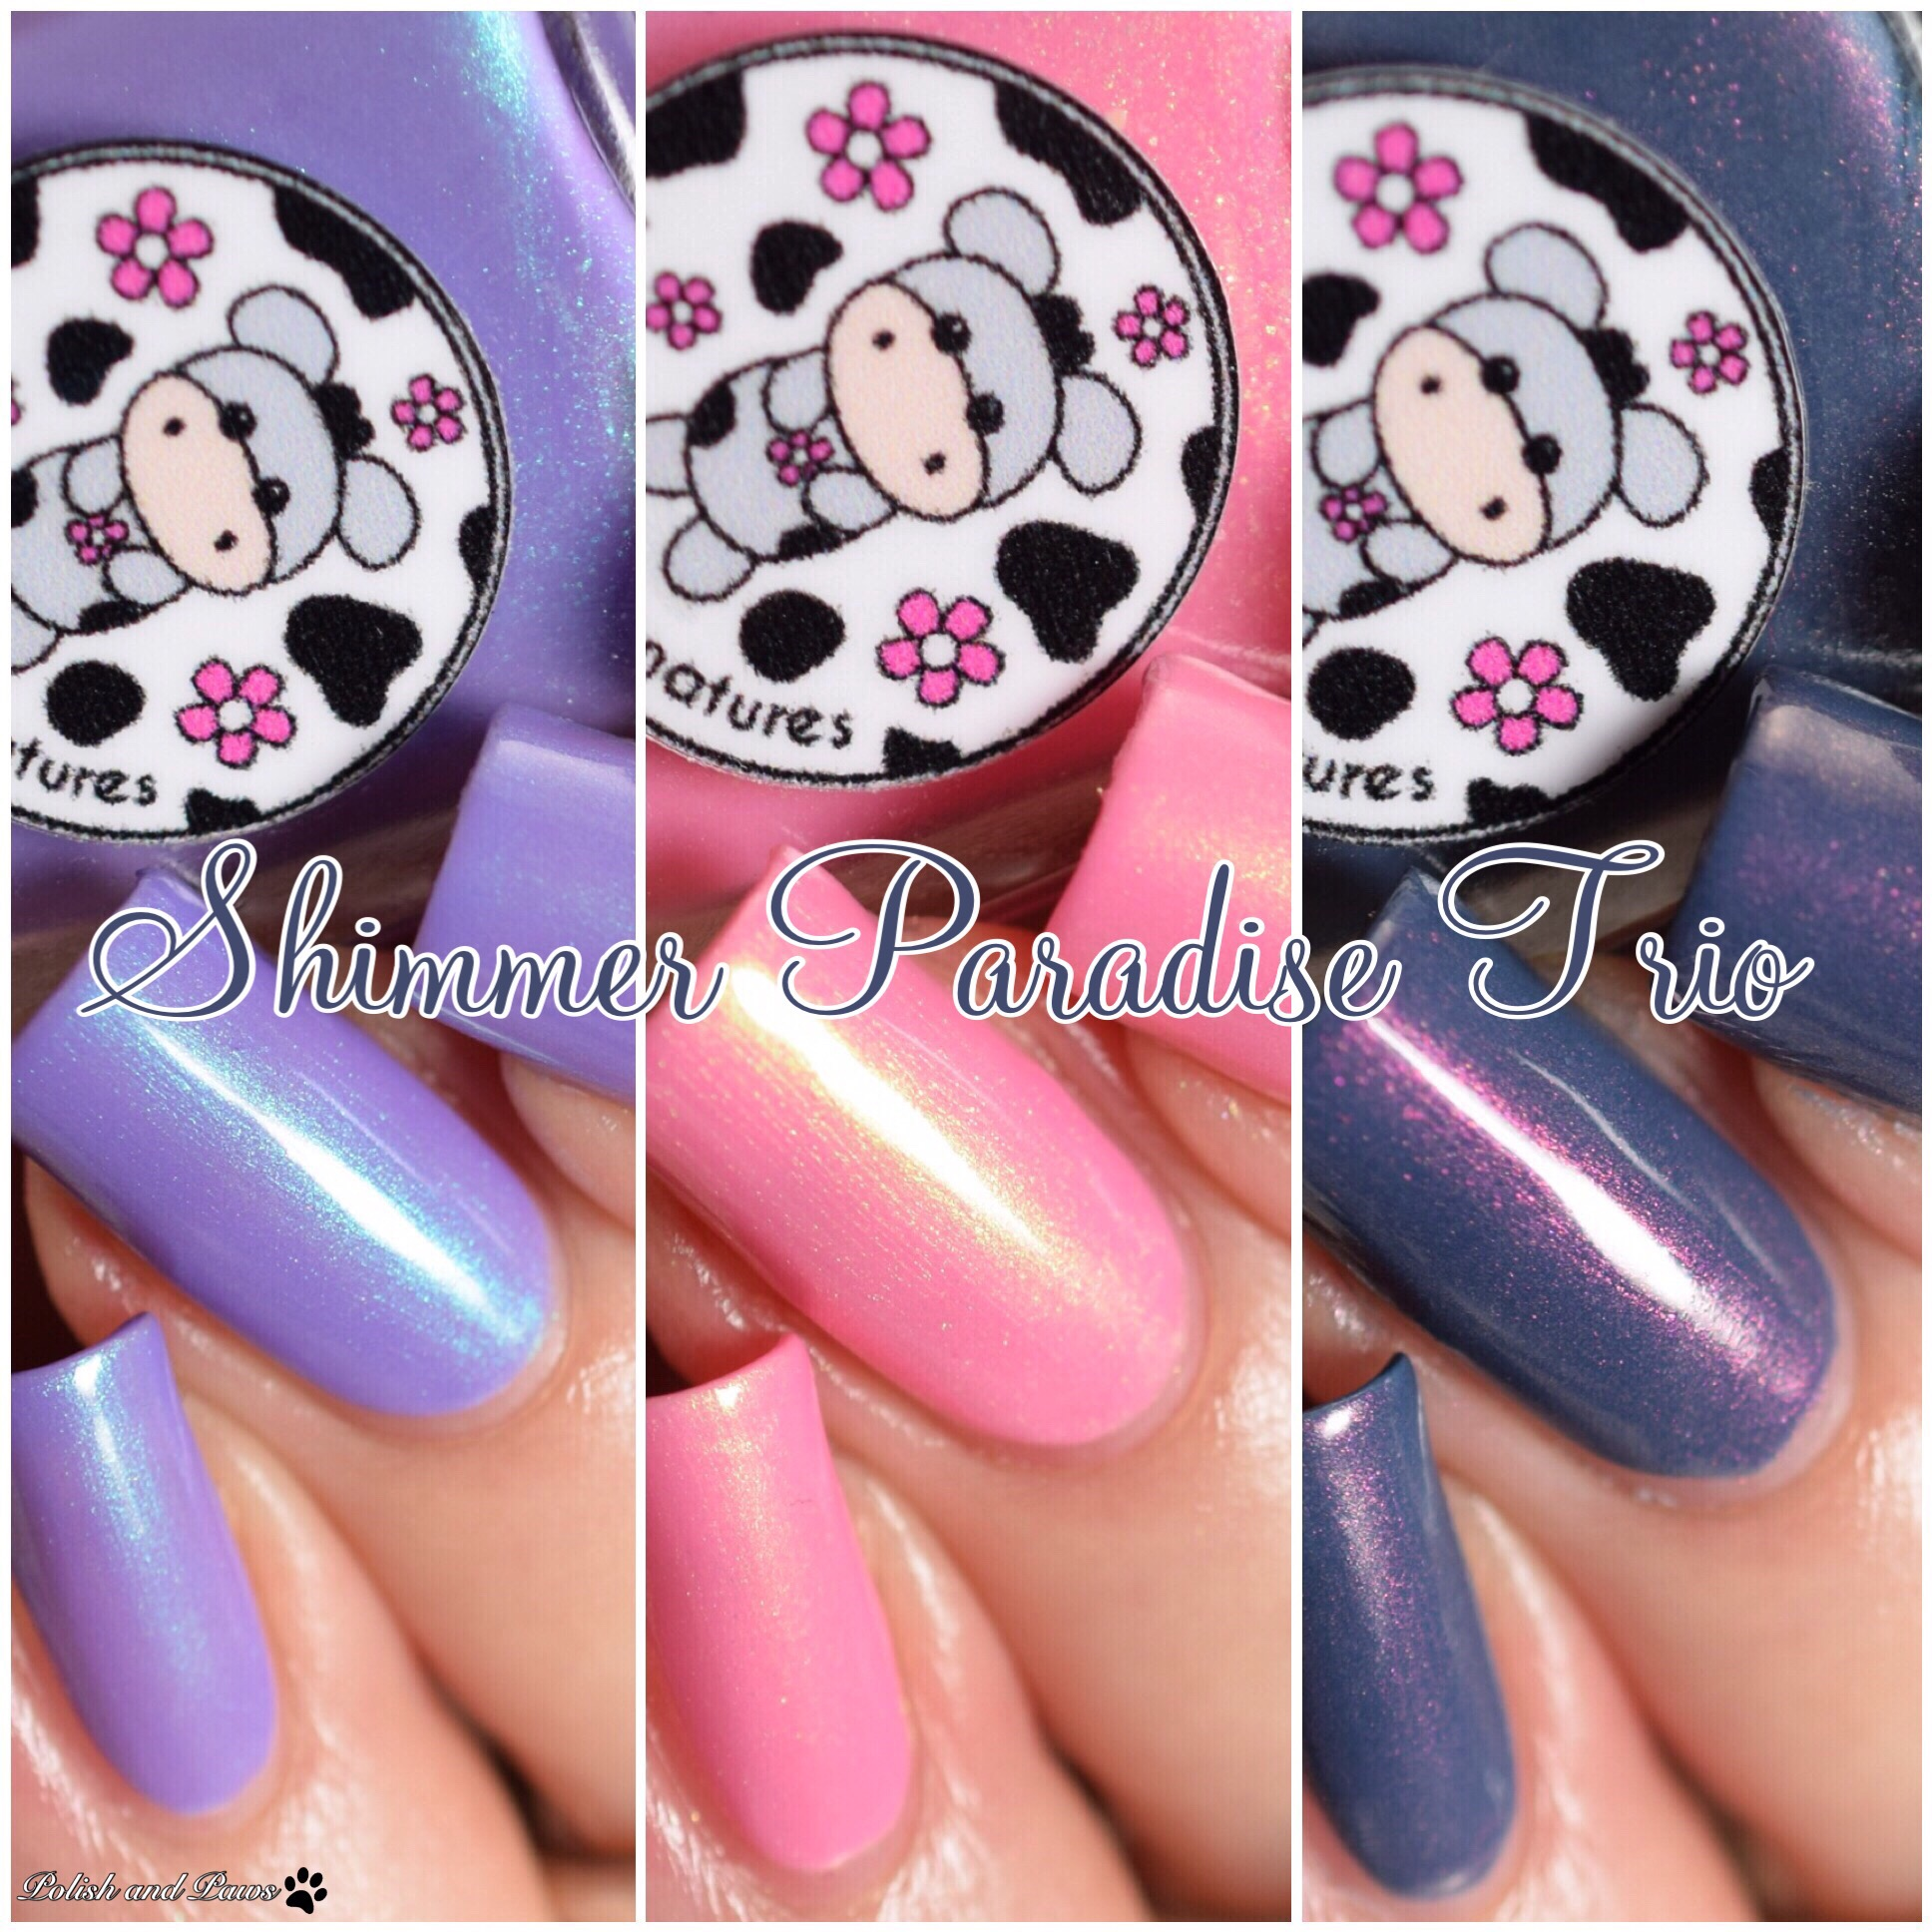 Moo Moo's Signatures Shimmer Paradise Trio